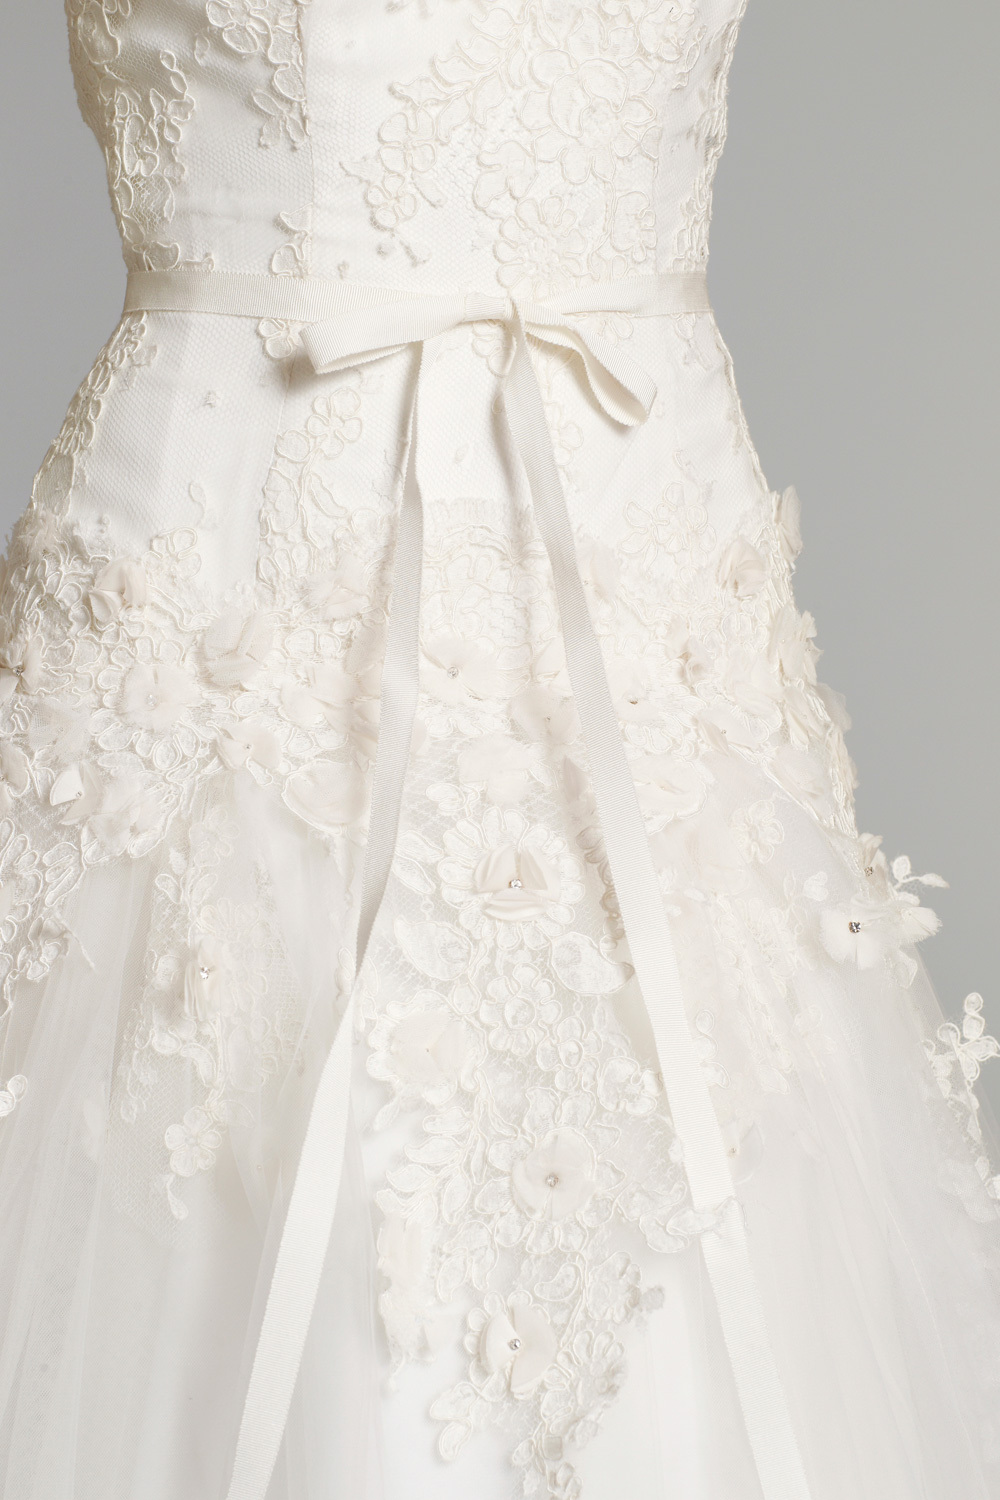 bridal gown wedding dress jlm hayley paige fall 2012 serafina front